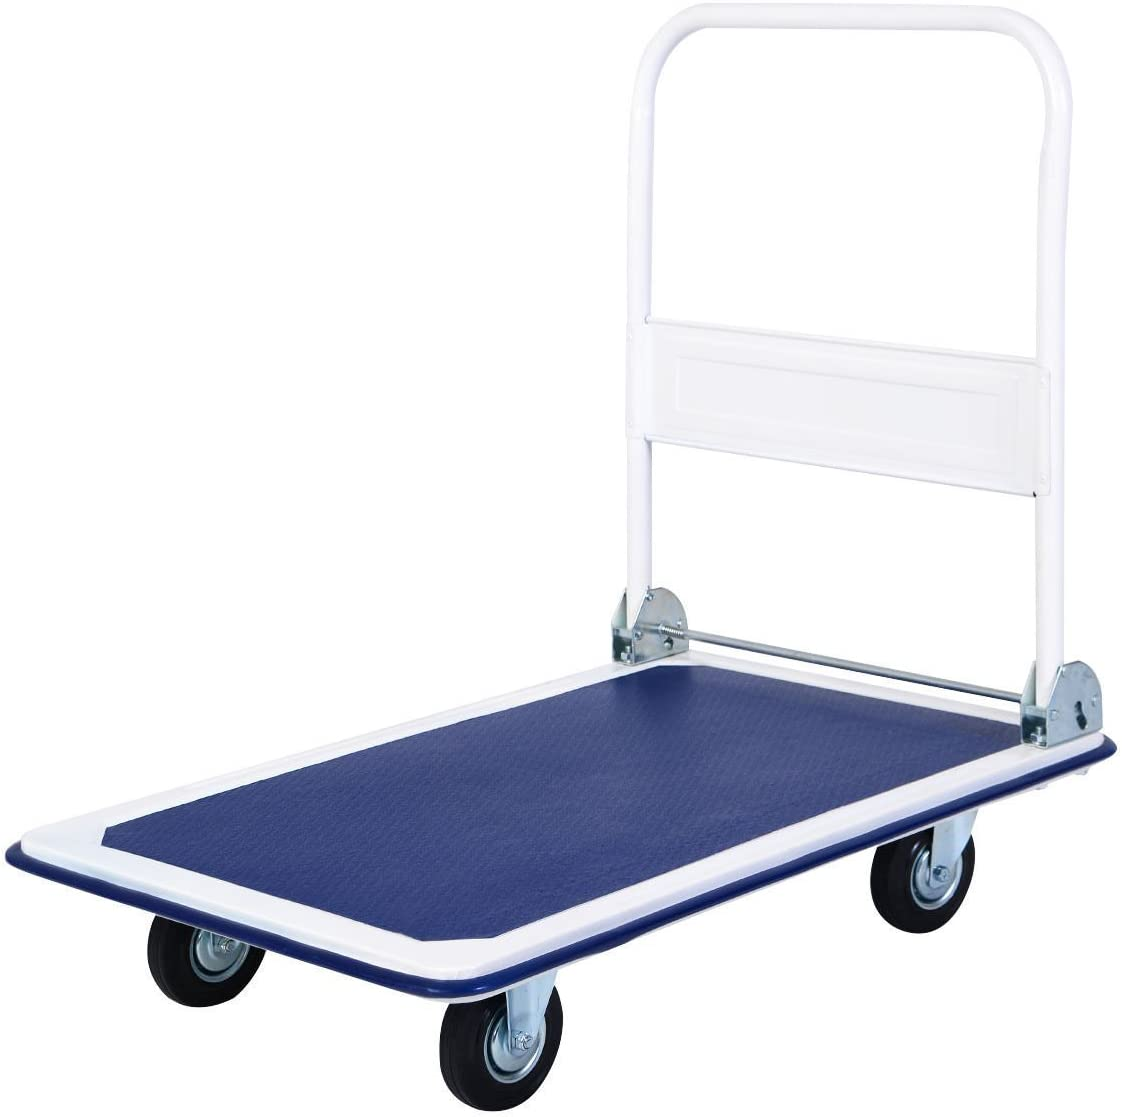 300 LB Capacity Hand Platform Flat Cart Dolly with Folding Handle Handcart